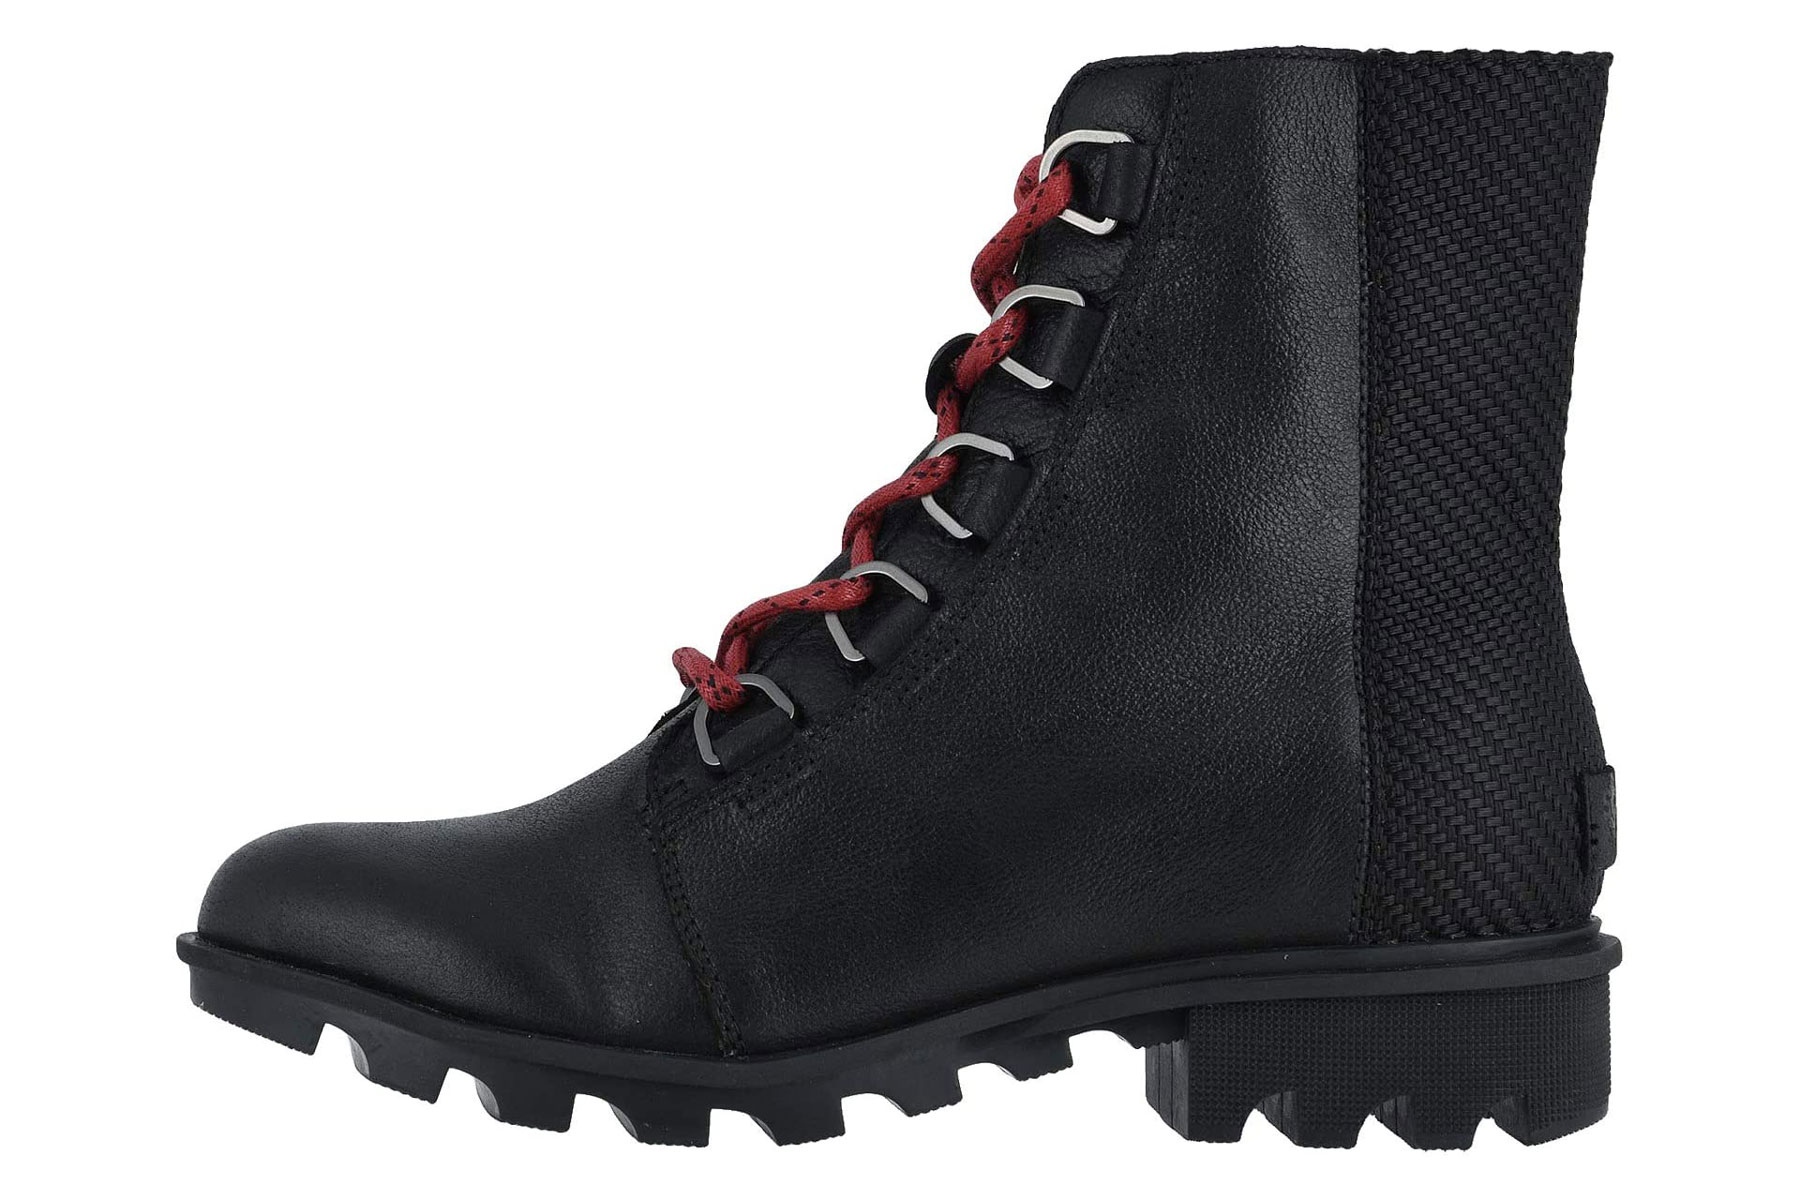 Black lace-up waterproof shoes